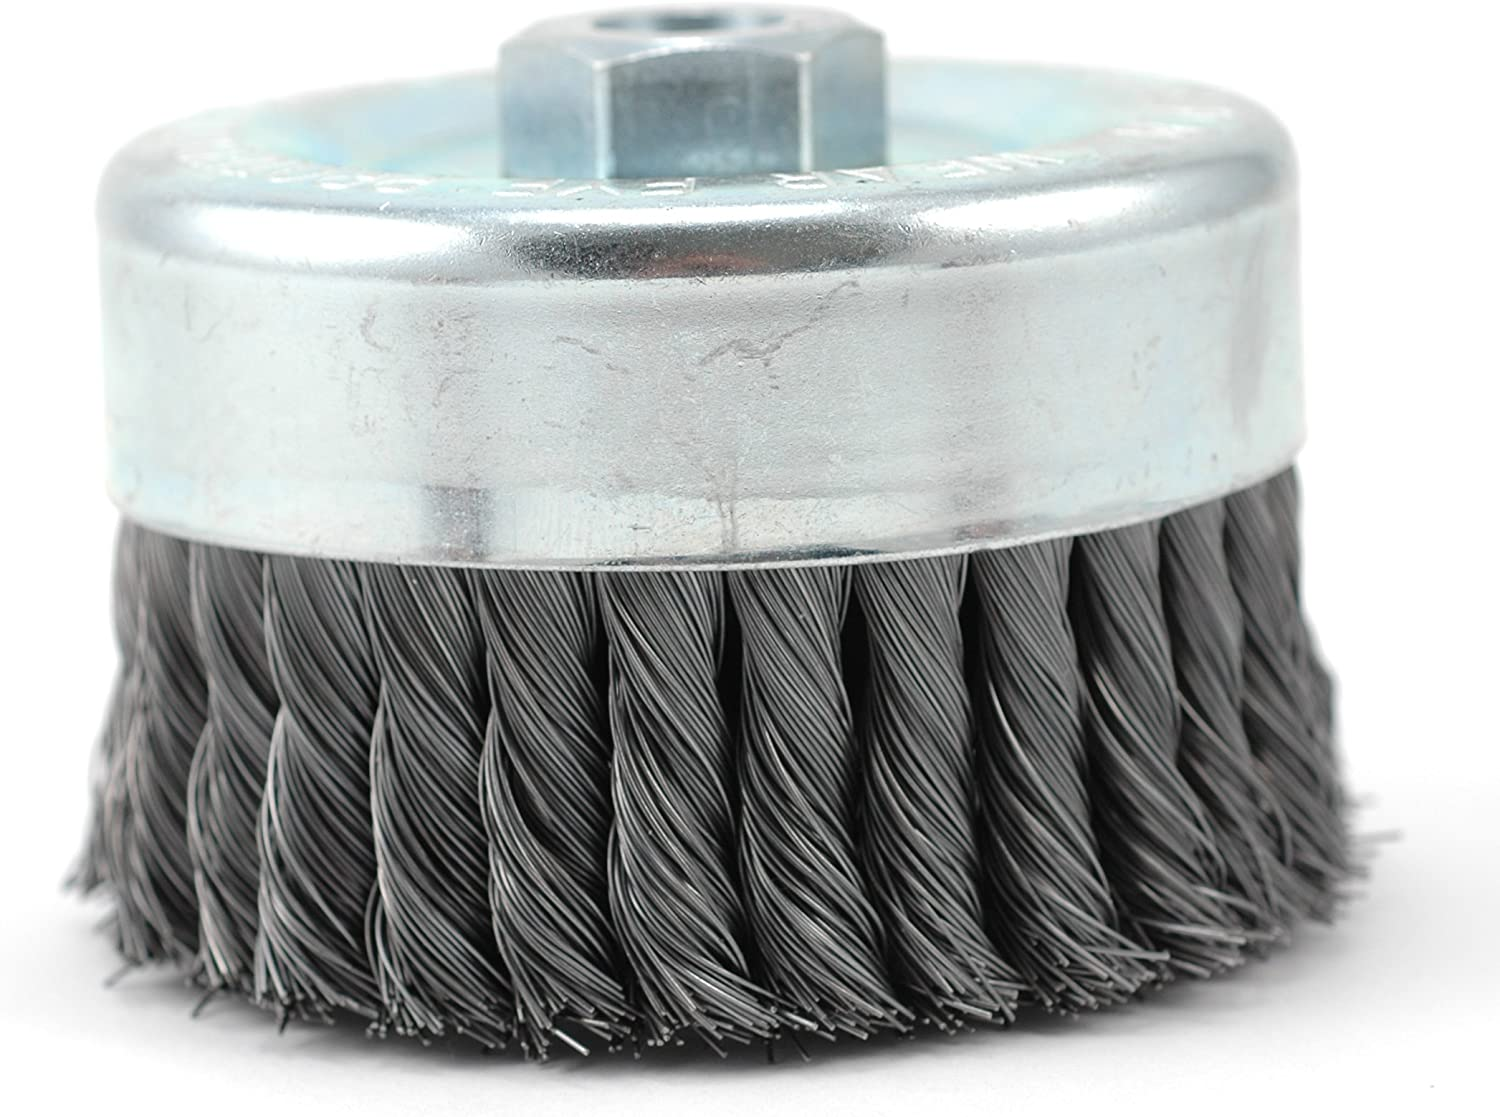 Hot Max 26060 3-Inch Crimped Wire Cup Brush Coarse 5//8-Inch-11NC